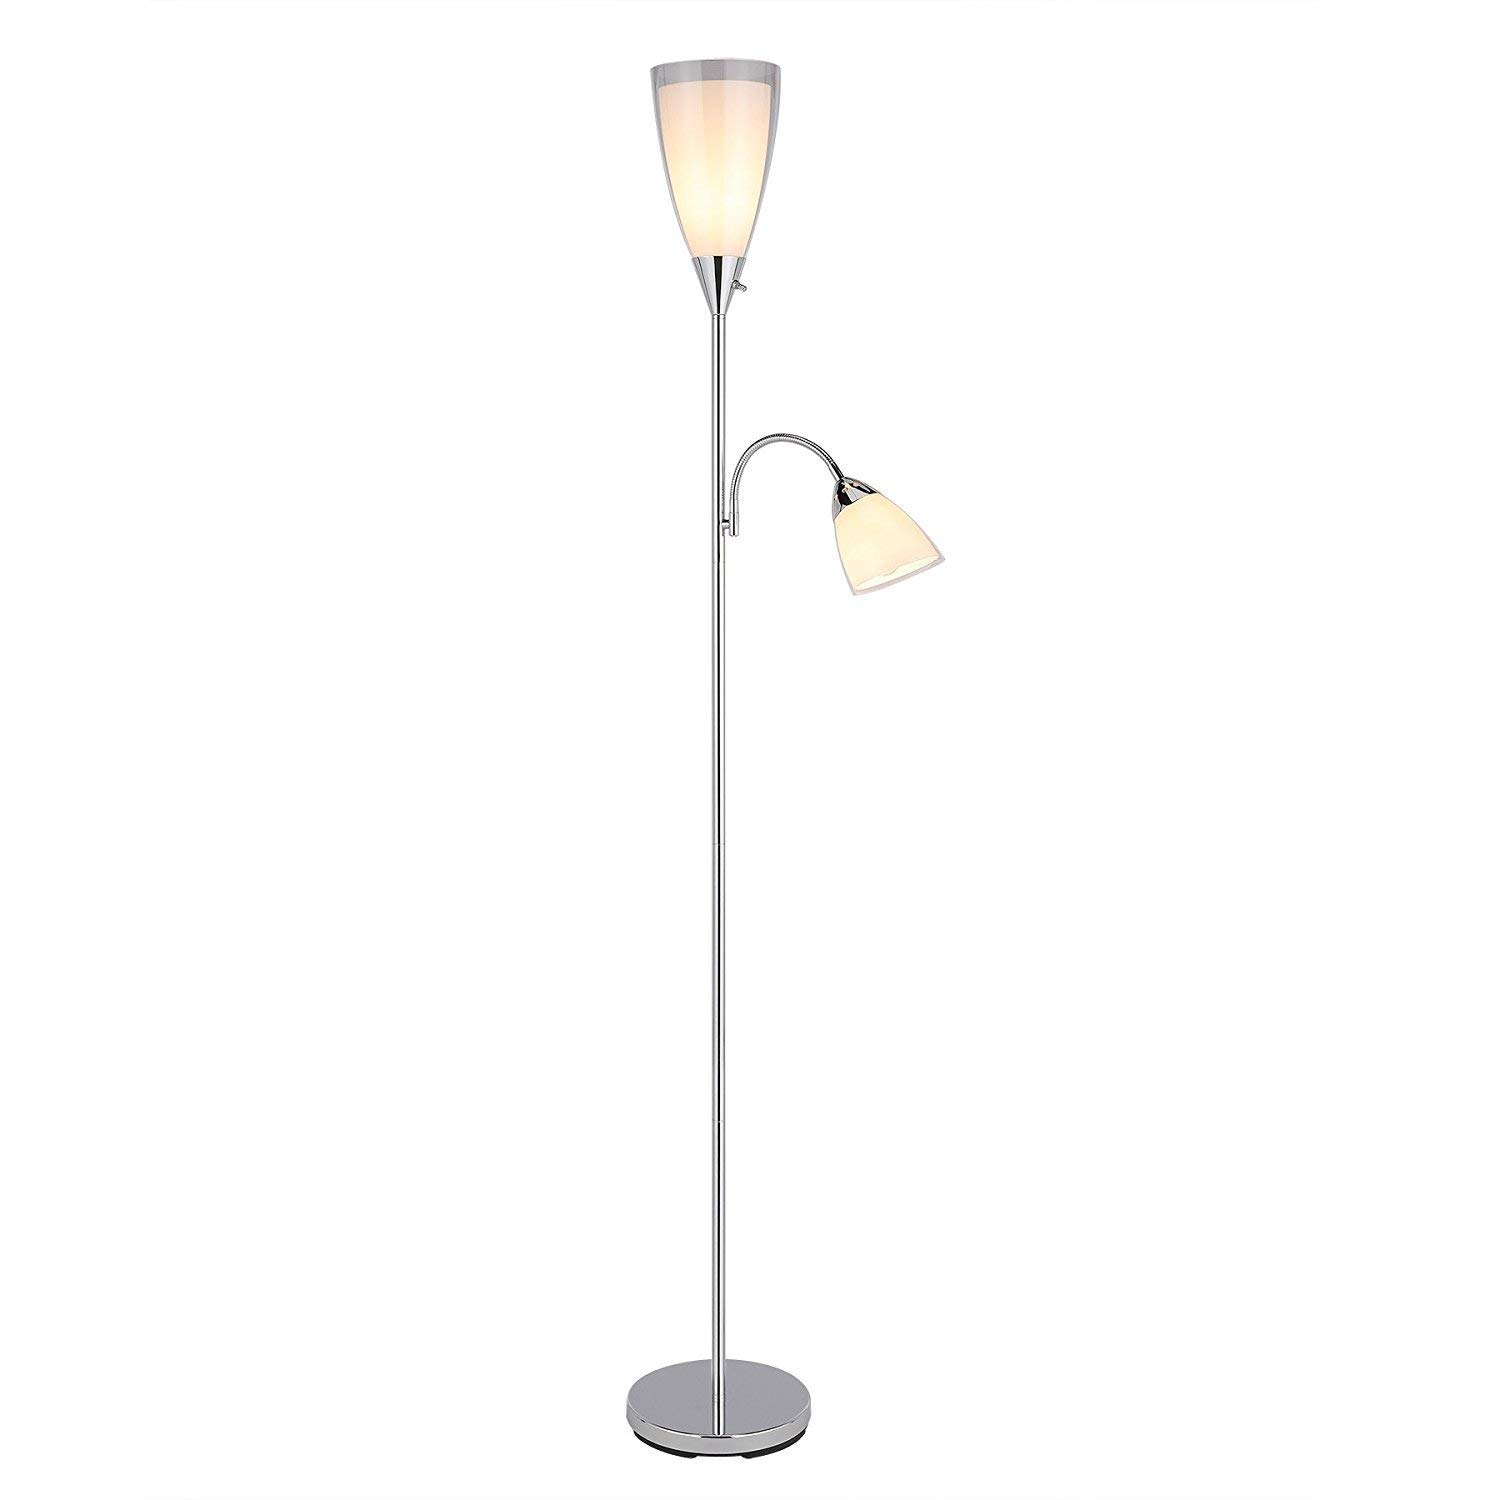 Cheap Torchiere Reading Lamp Find Deals On 3 Way Switch Floor Get Quotations Combo With Side Light Chrome Multi Standing